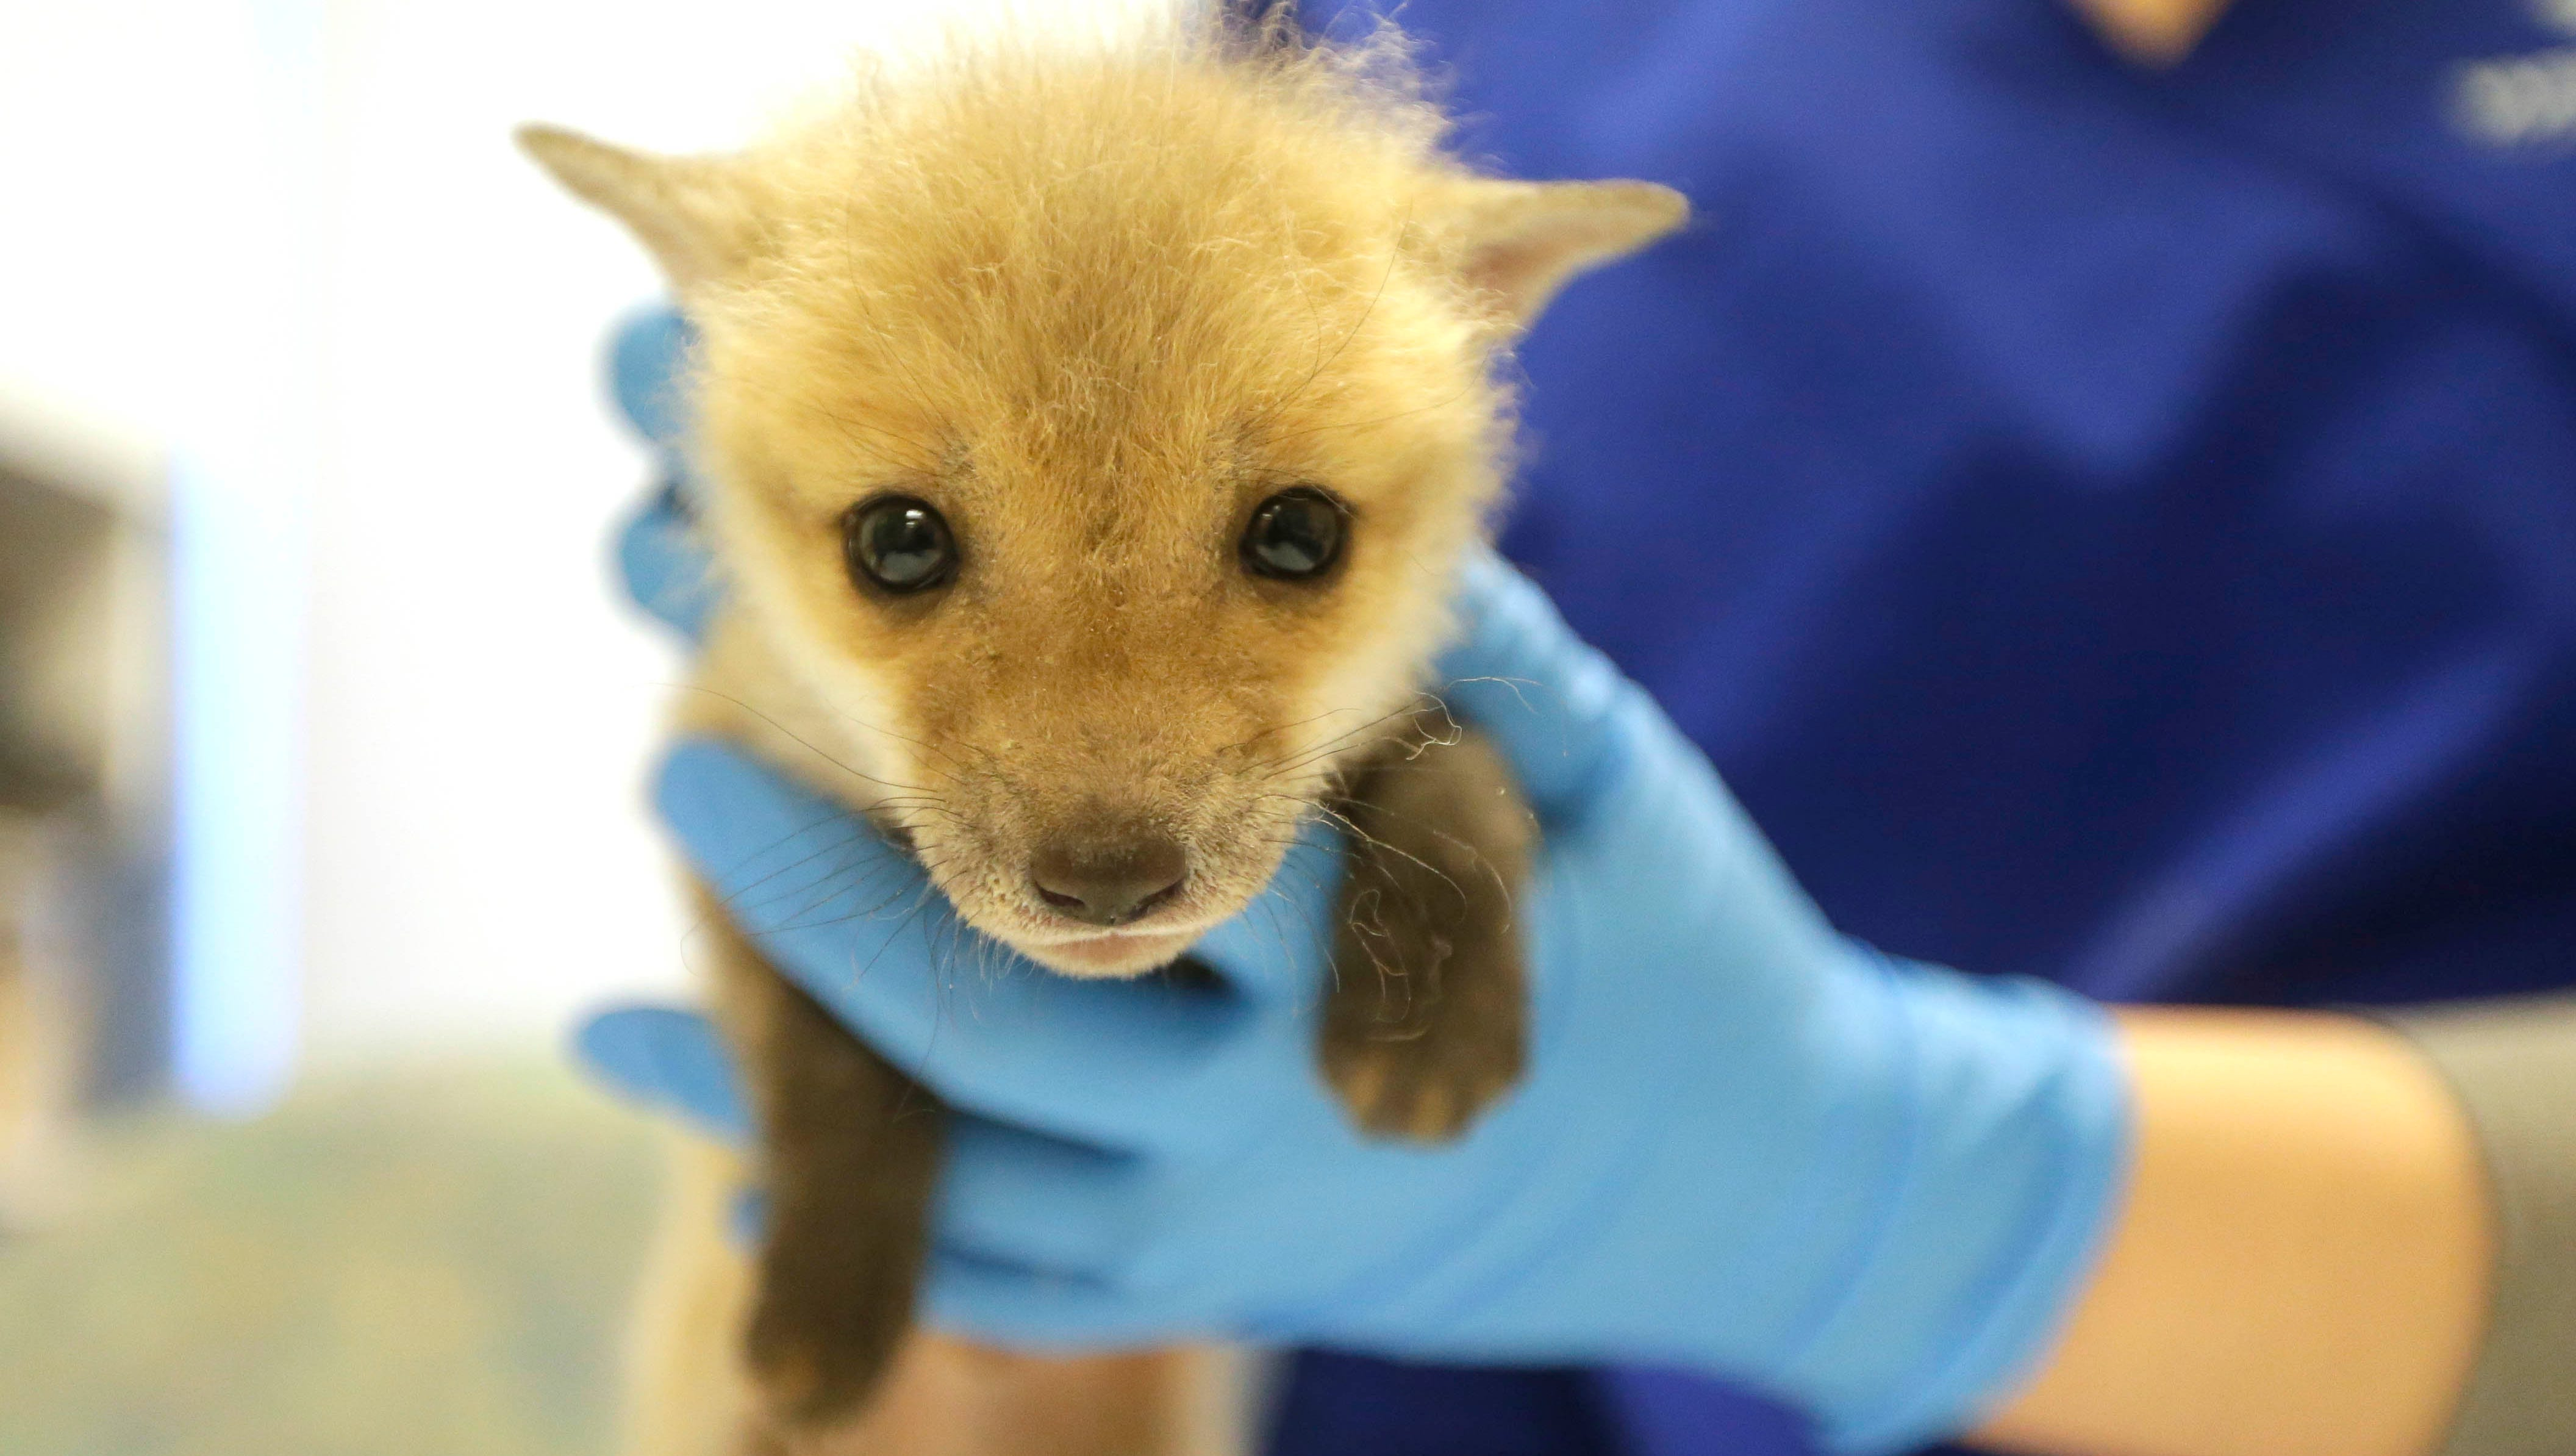 wisconsin humane society abandoned baby fox kit clover is